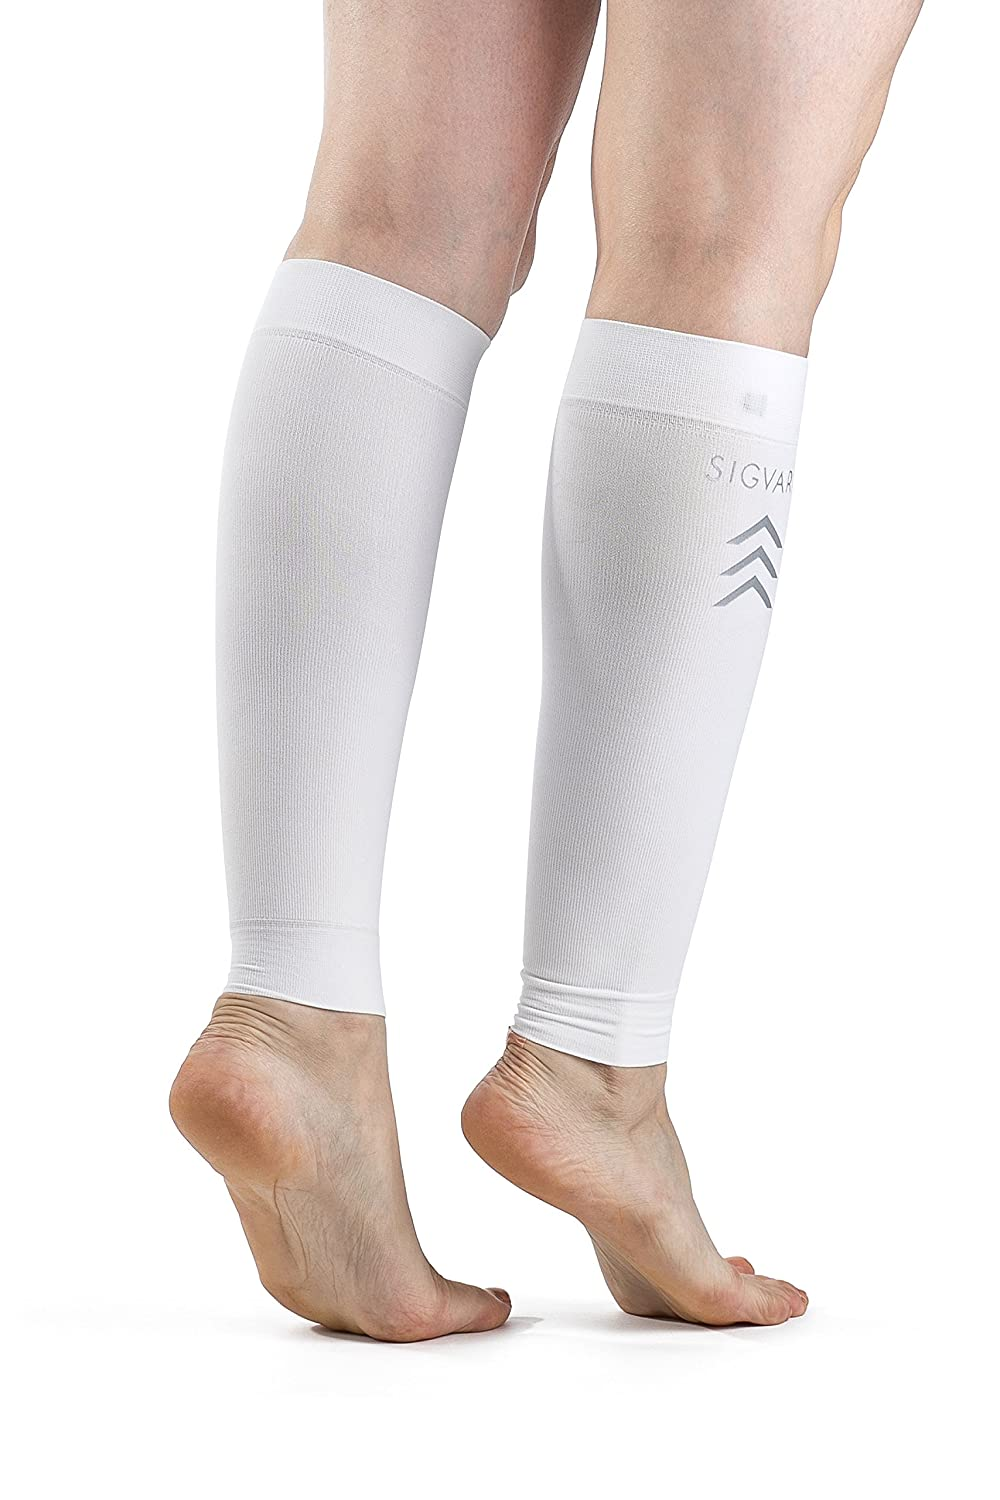 15a4225b0e Sigvaris Compression Running Leg Calf Sleeves for Men and Women by Sigvaris:  Amazon.co.uk: Sports & Outdoors